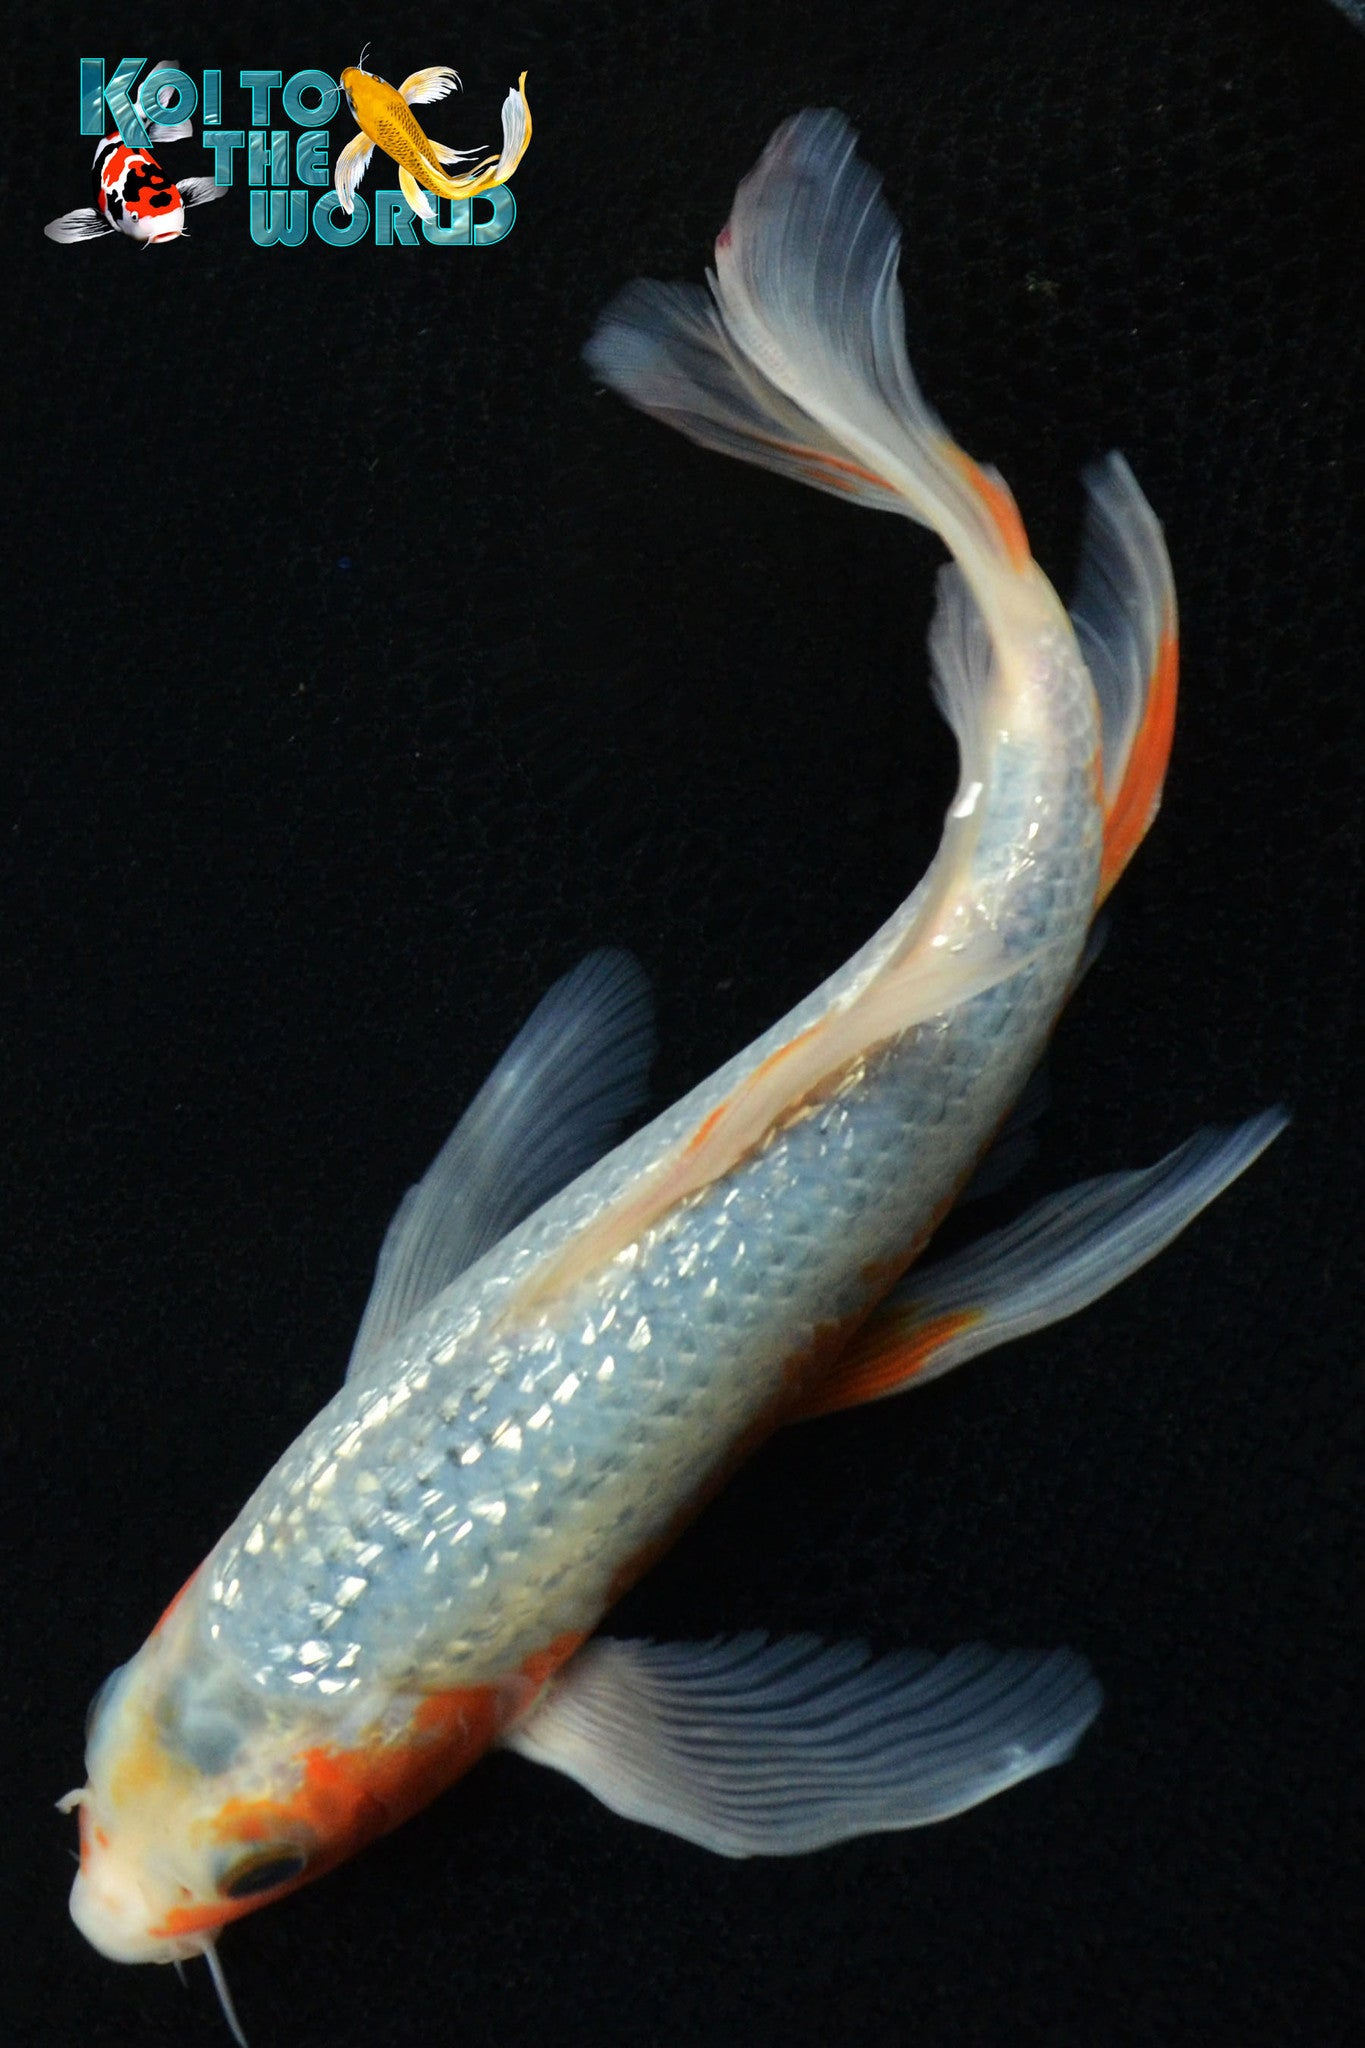 Ginrin asagi butterfly koi to the world for Koi to the world